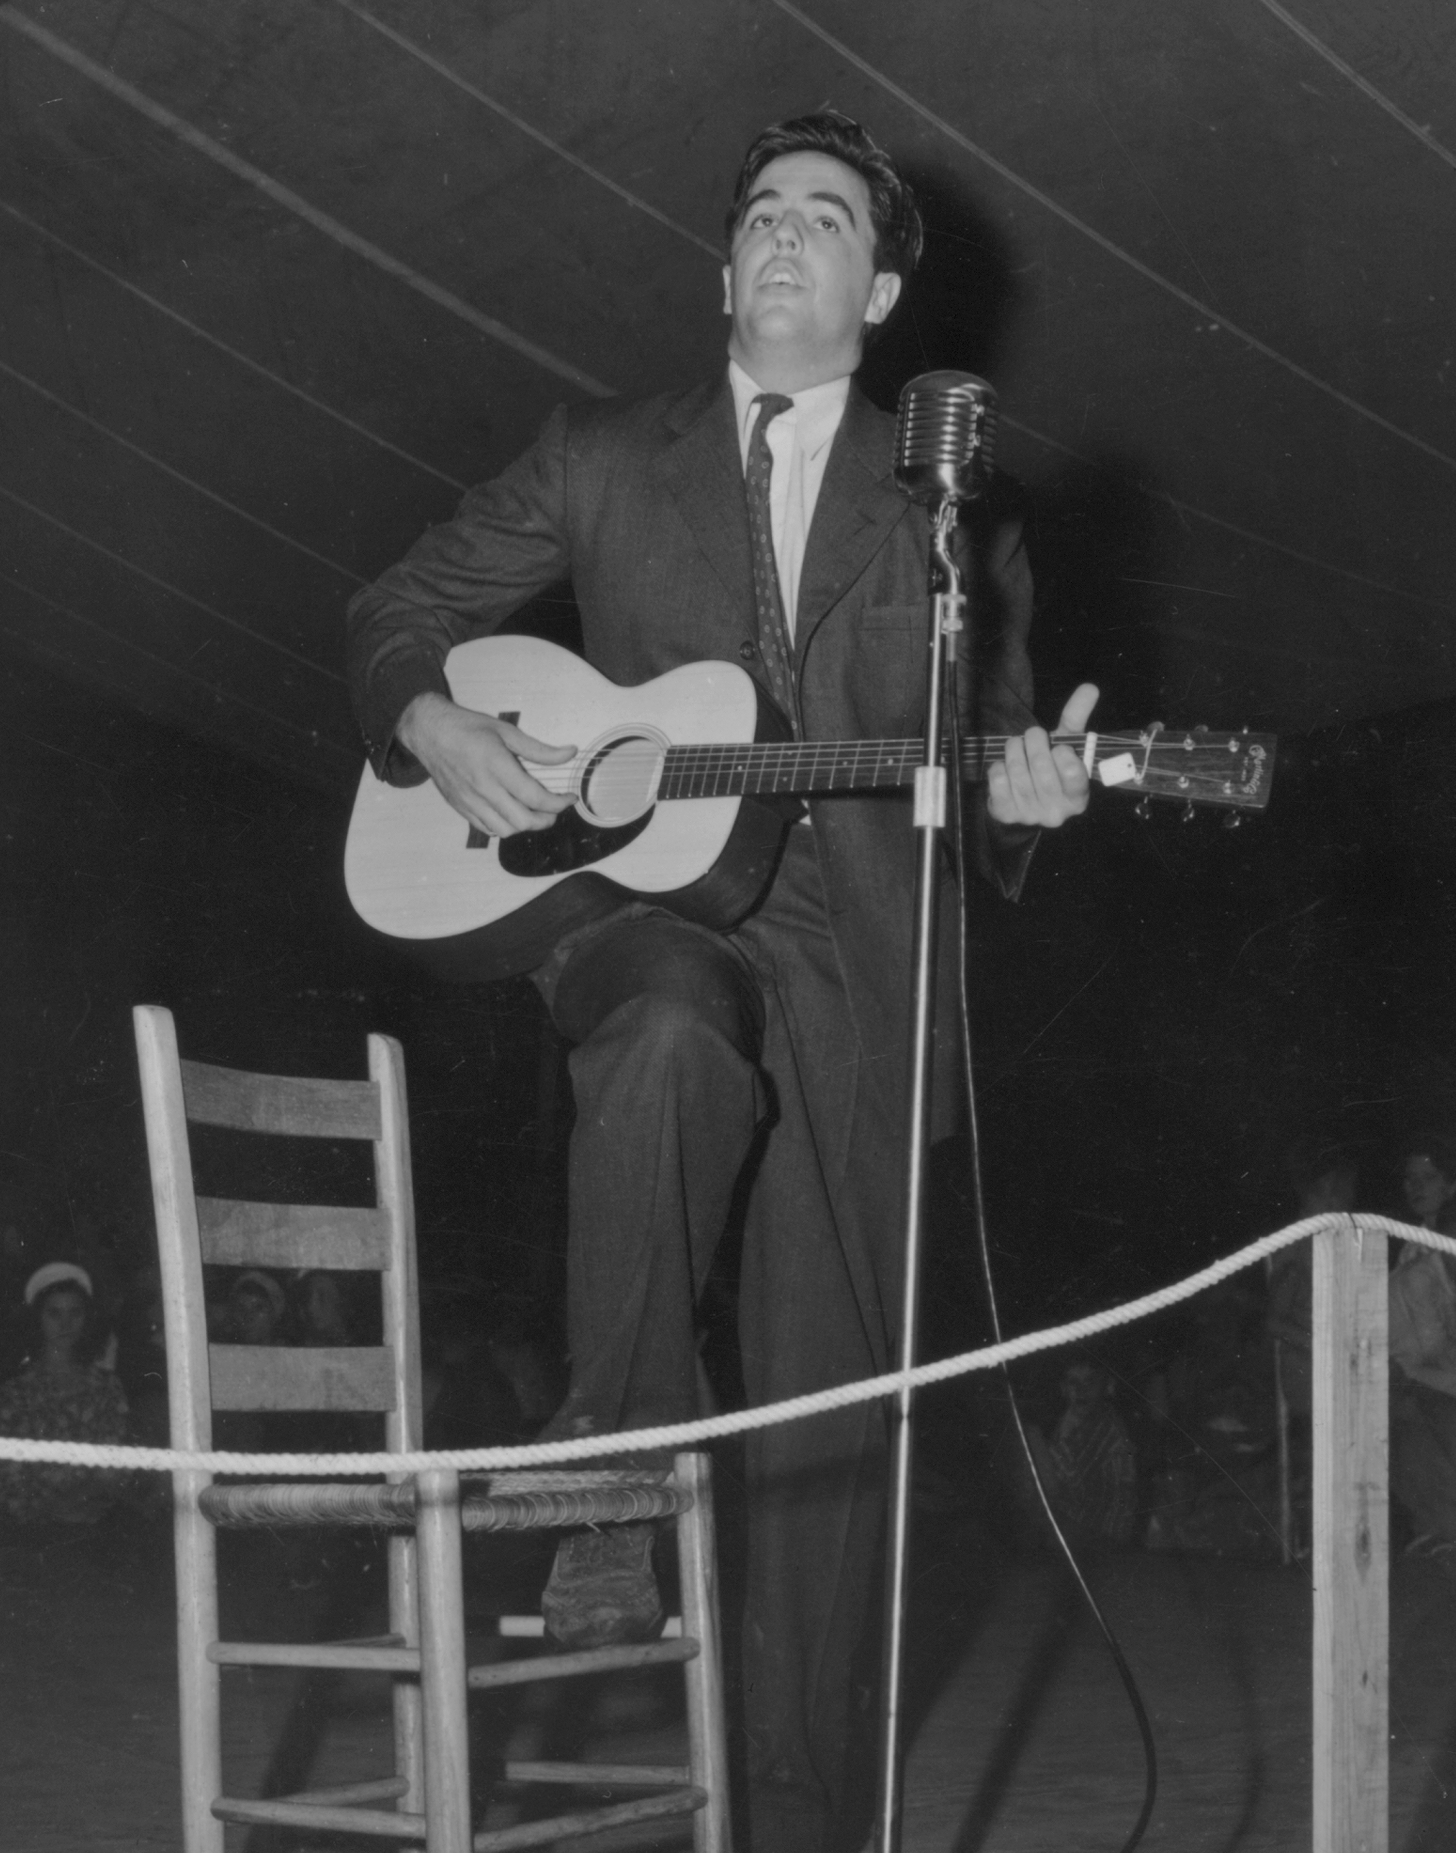 Image of Alan Lomax from Wikidata